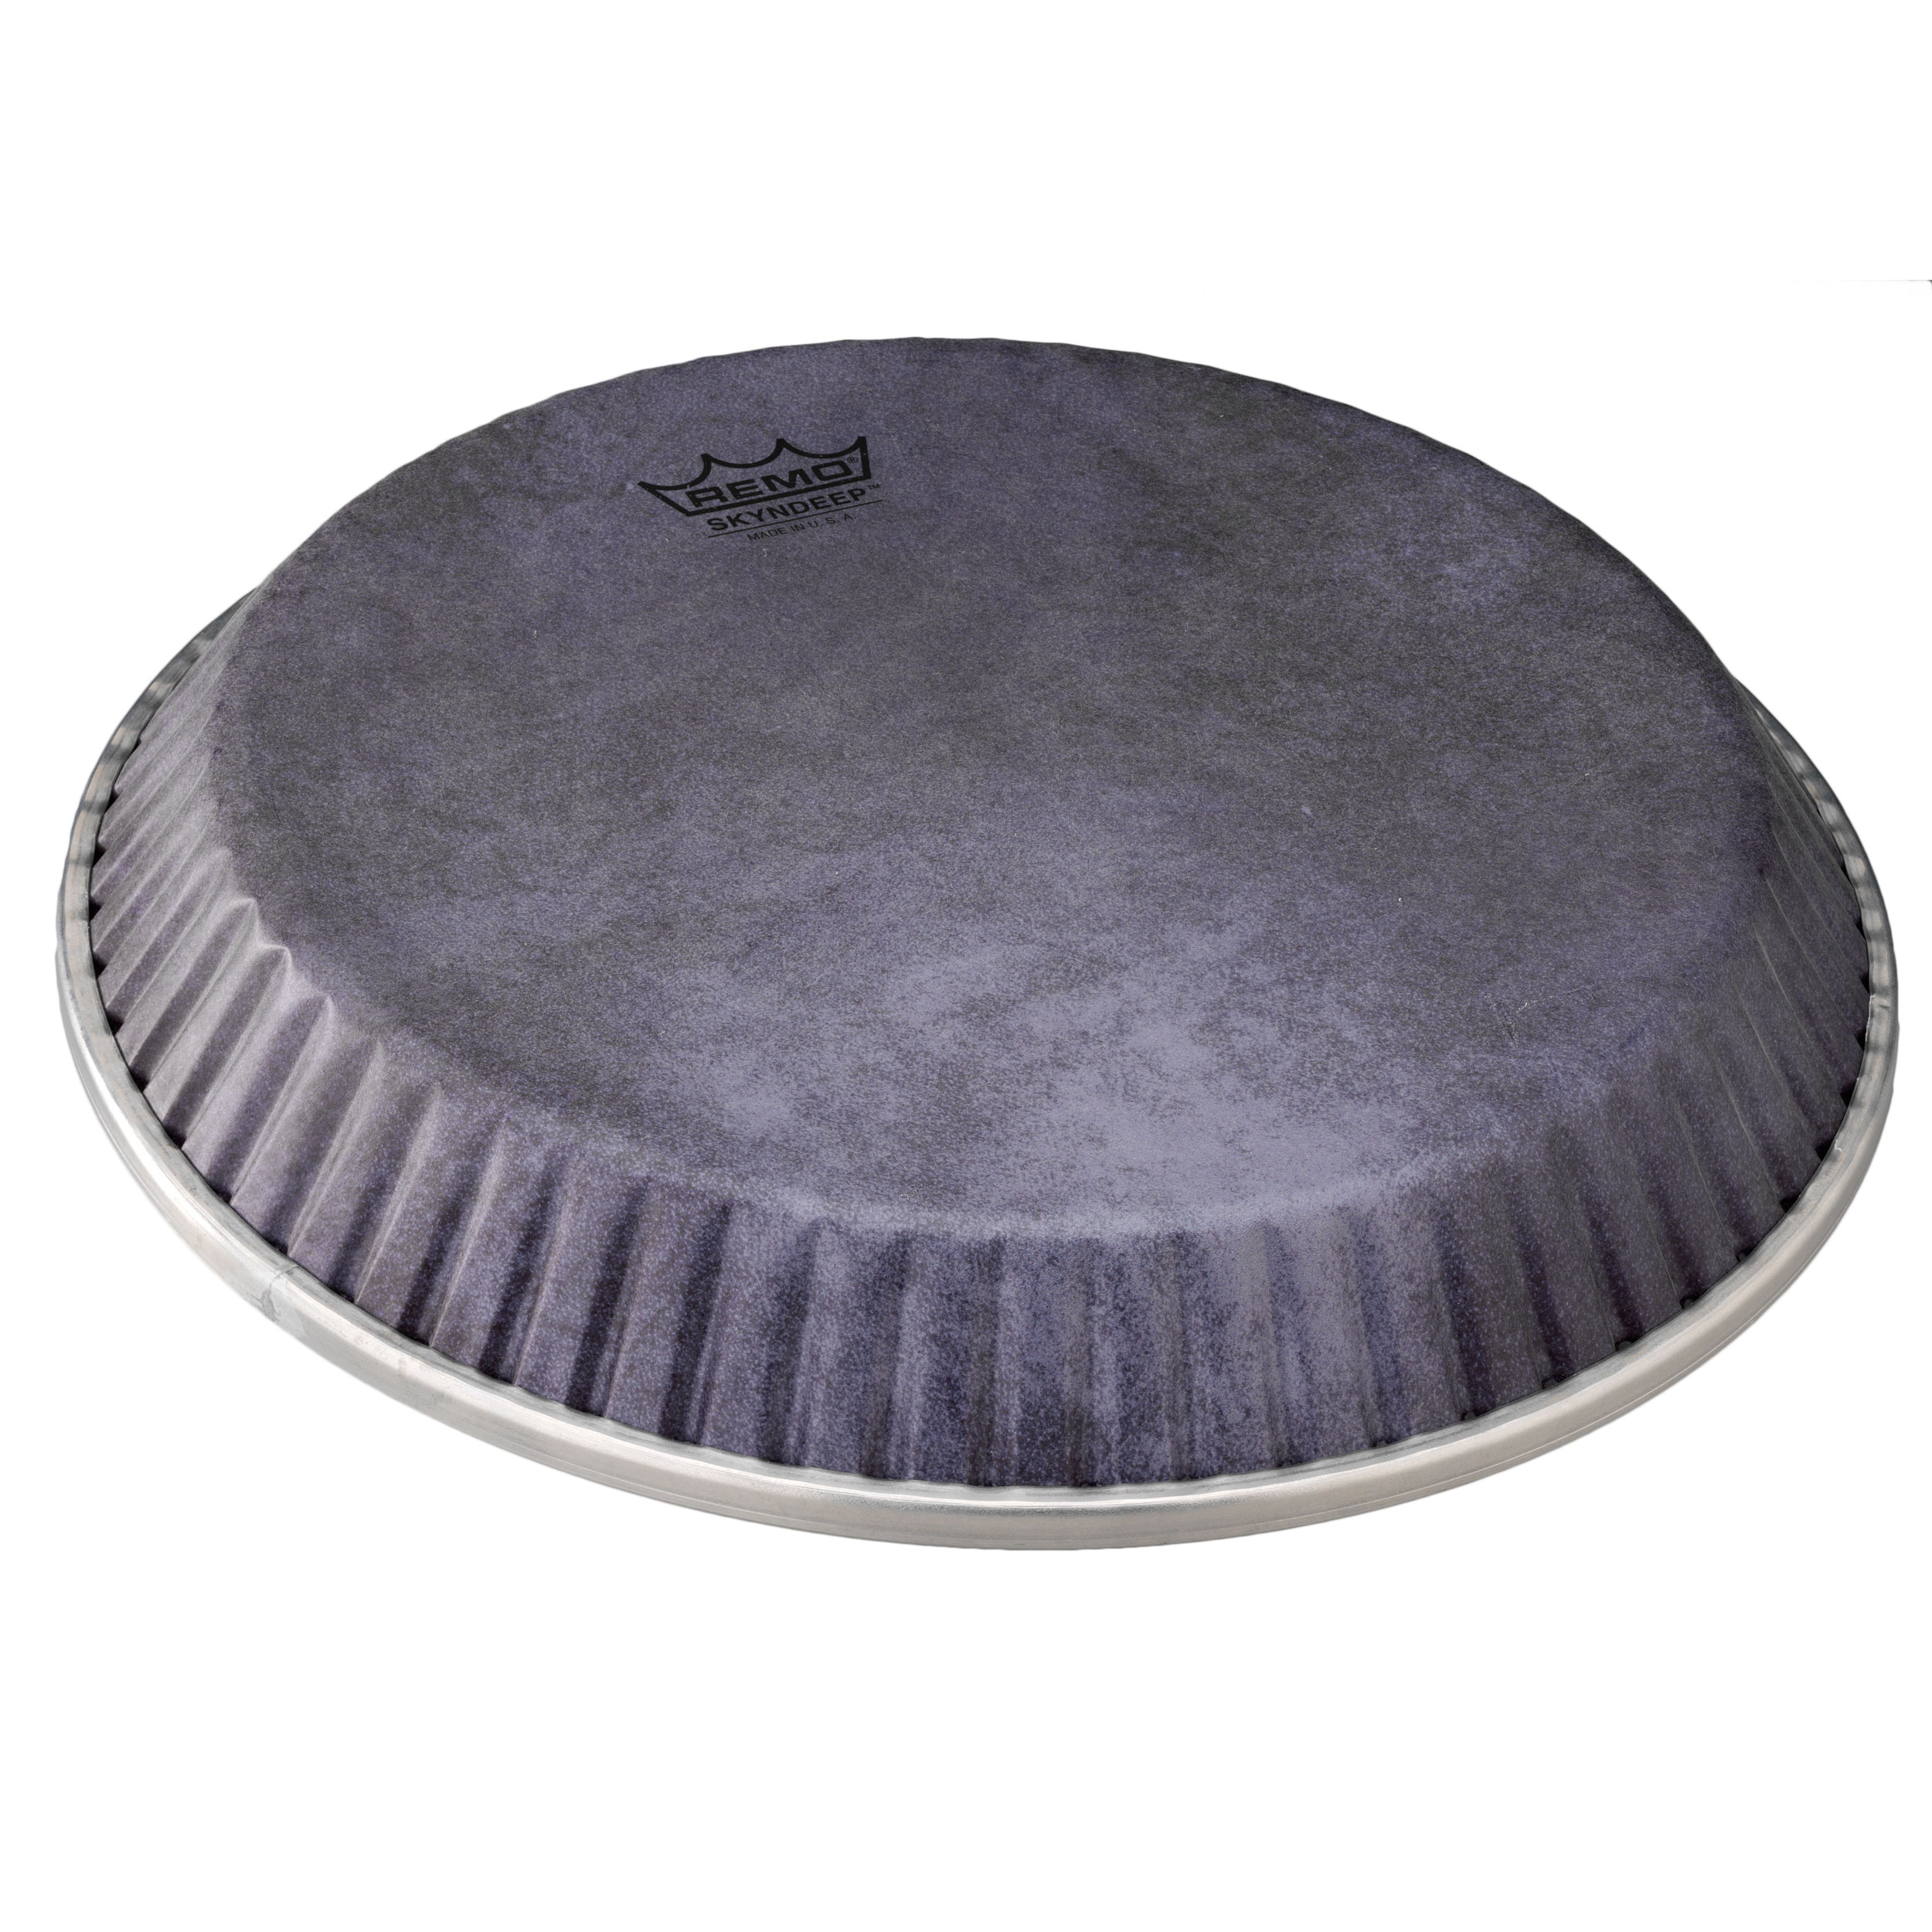 """Remo 10.75"""" Symmetry Skyndeep Conga Drum Head (D2 Collar) with Black Calfskin Graphic"""